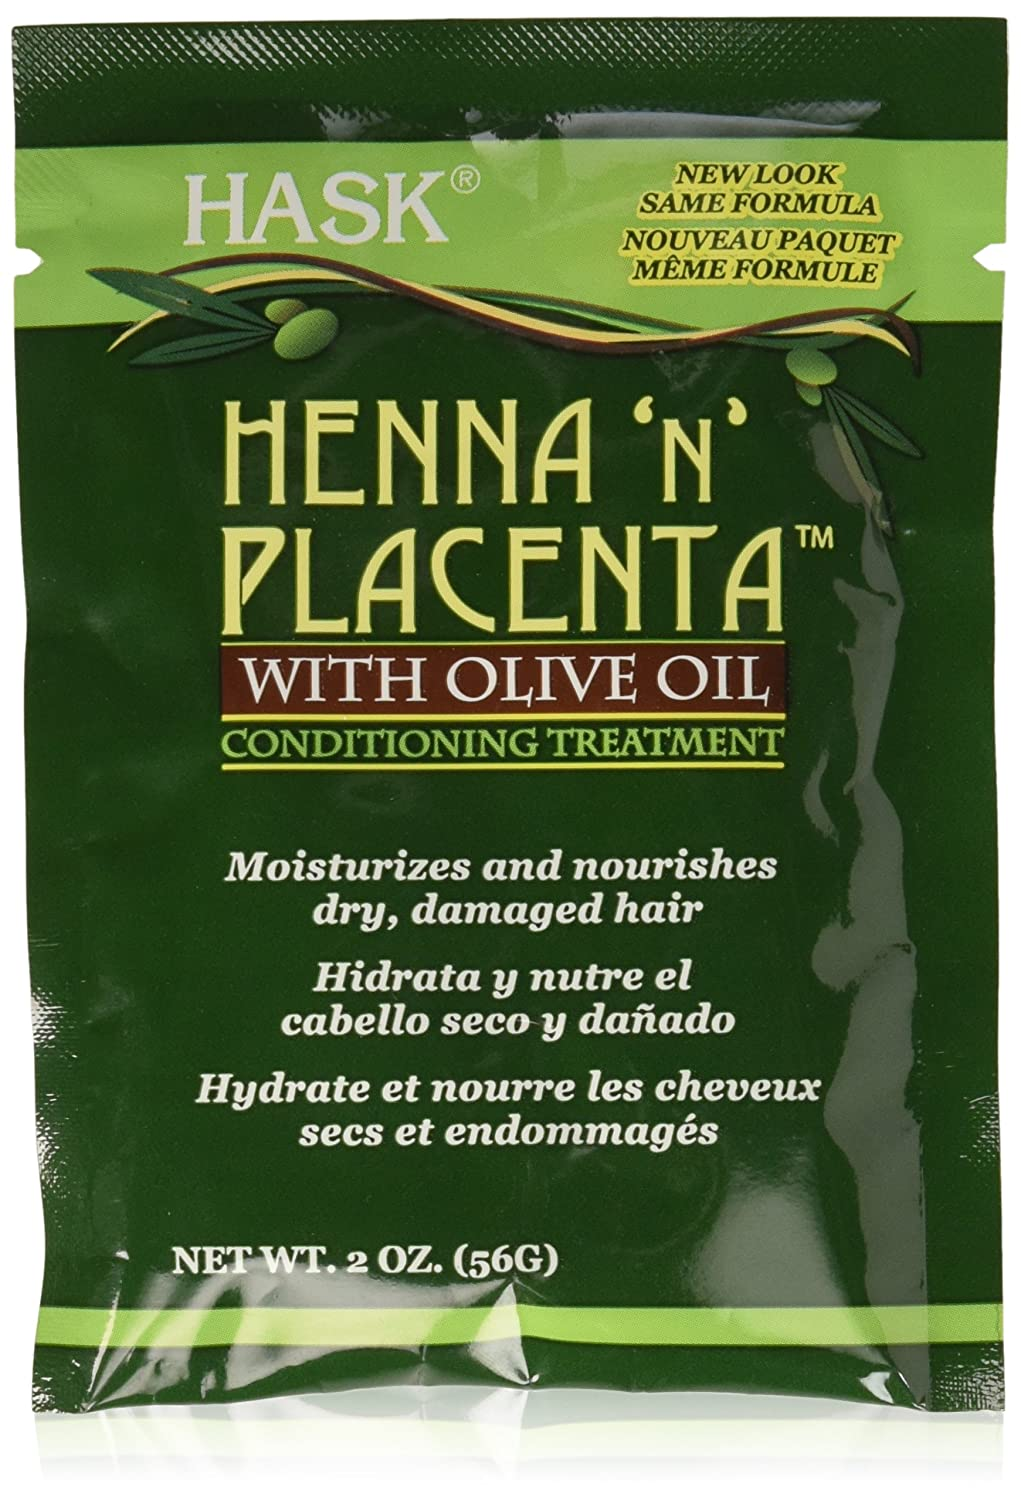 HASK Henna 'N' Placenta with Olive Oil Conditioning Treatment, 2 Oz, 0.13 lb